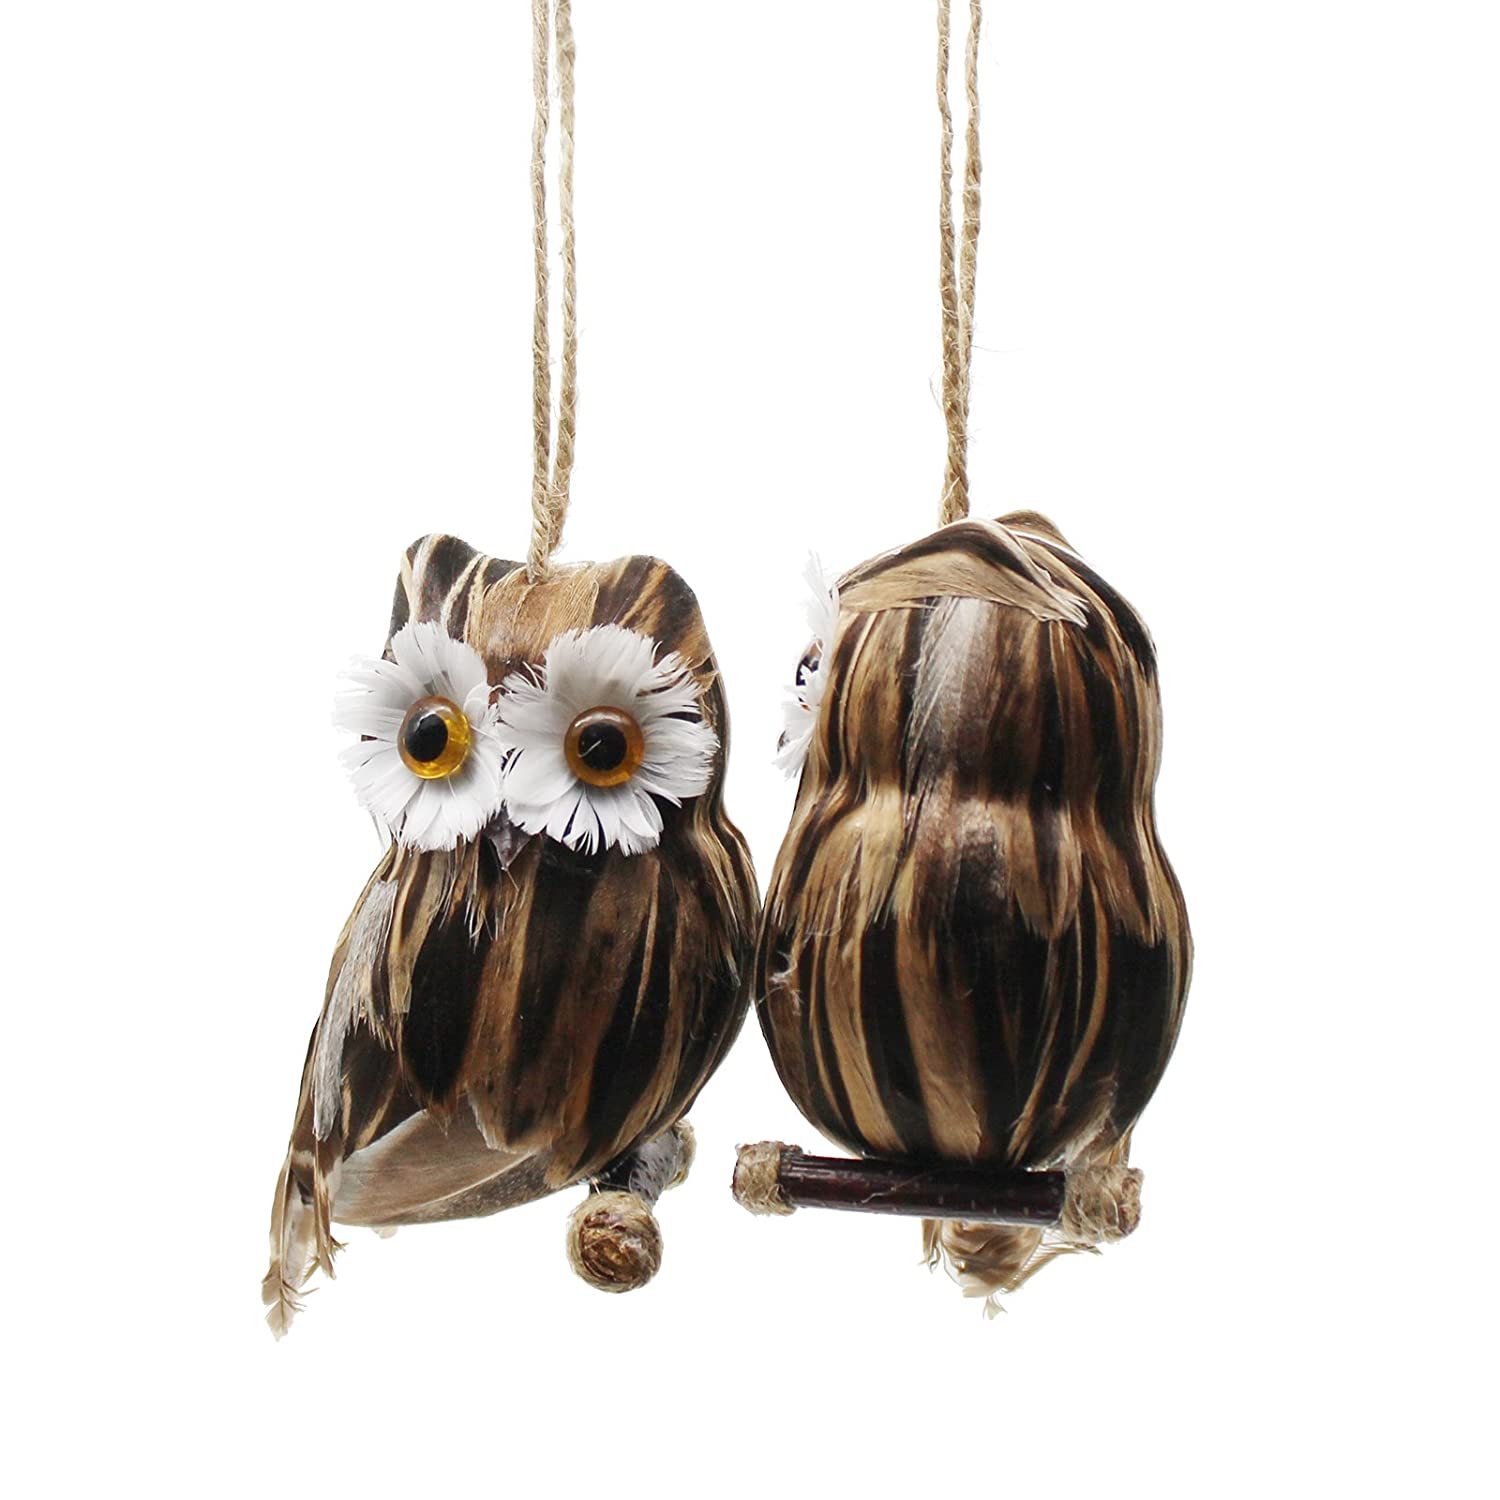 Yolococa 2pcs Christmas Tree Hanging Owl Decoration